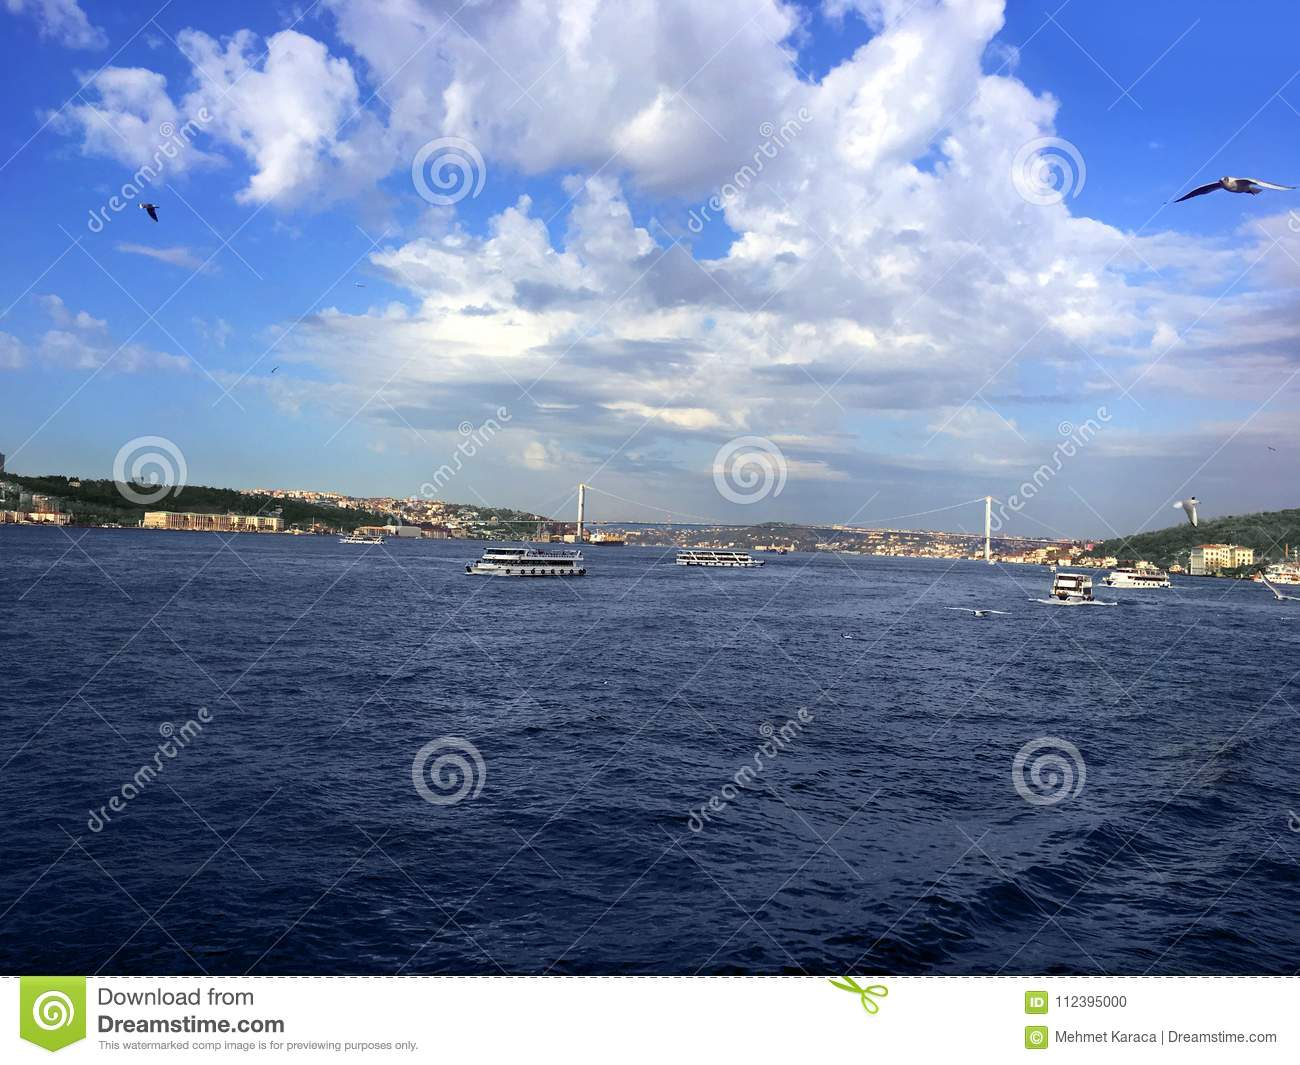 Bosphorus Bridge flying seagulls and steamboats